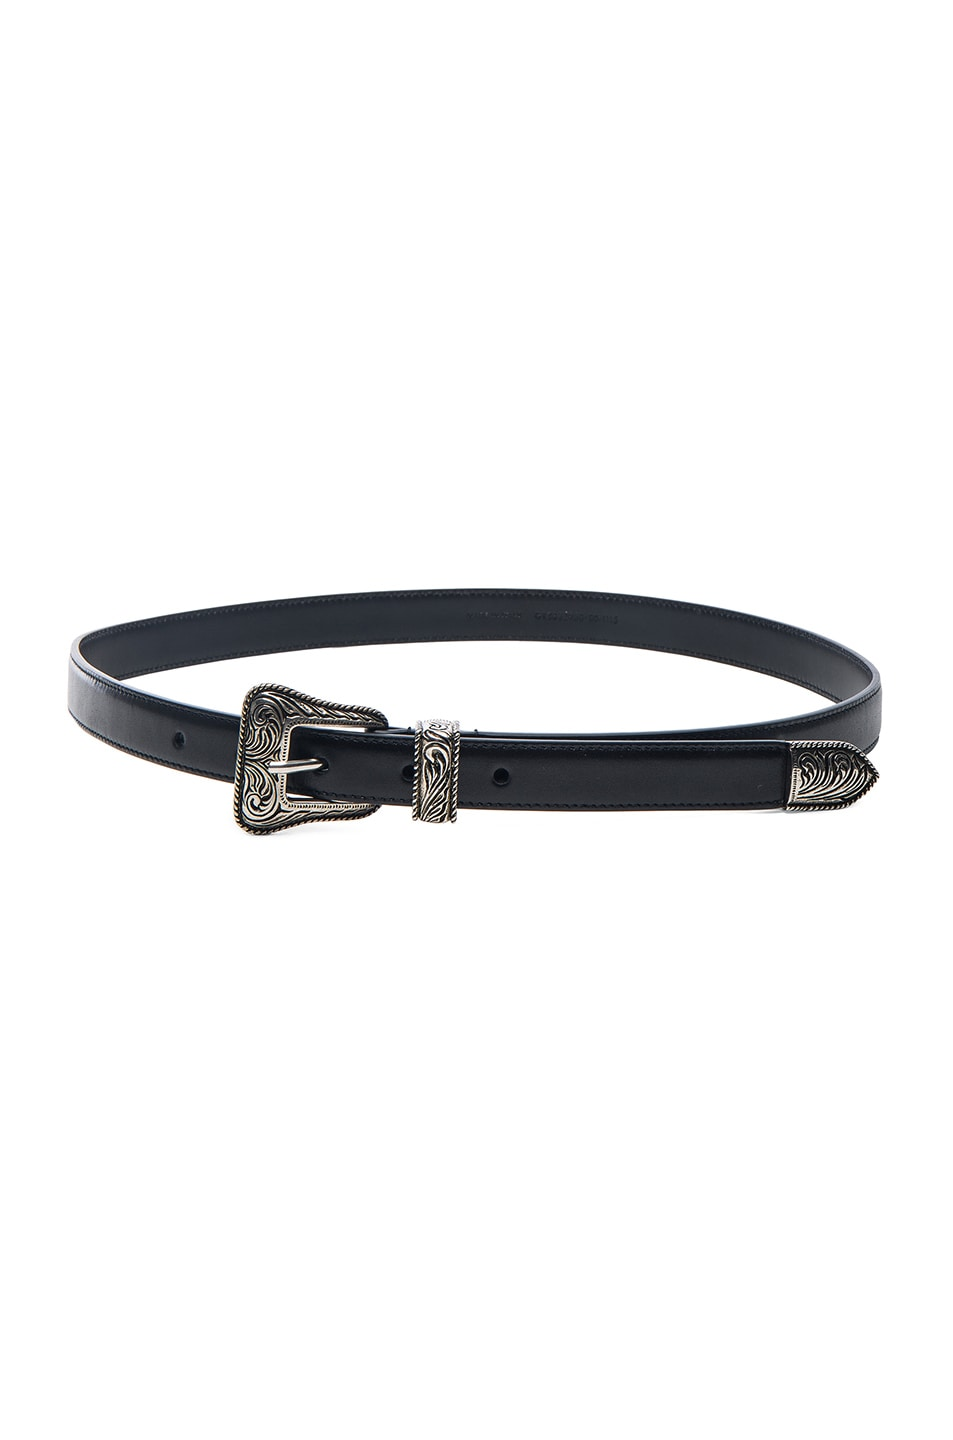 Black and Silver Western Belt Givenchy